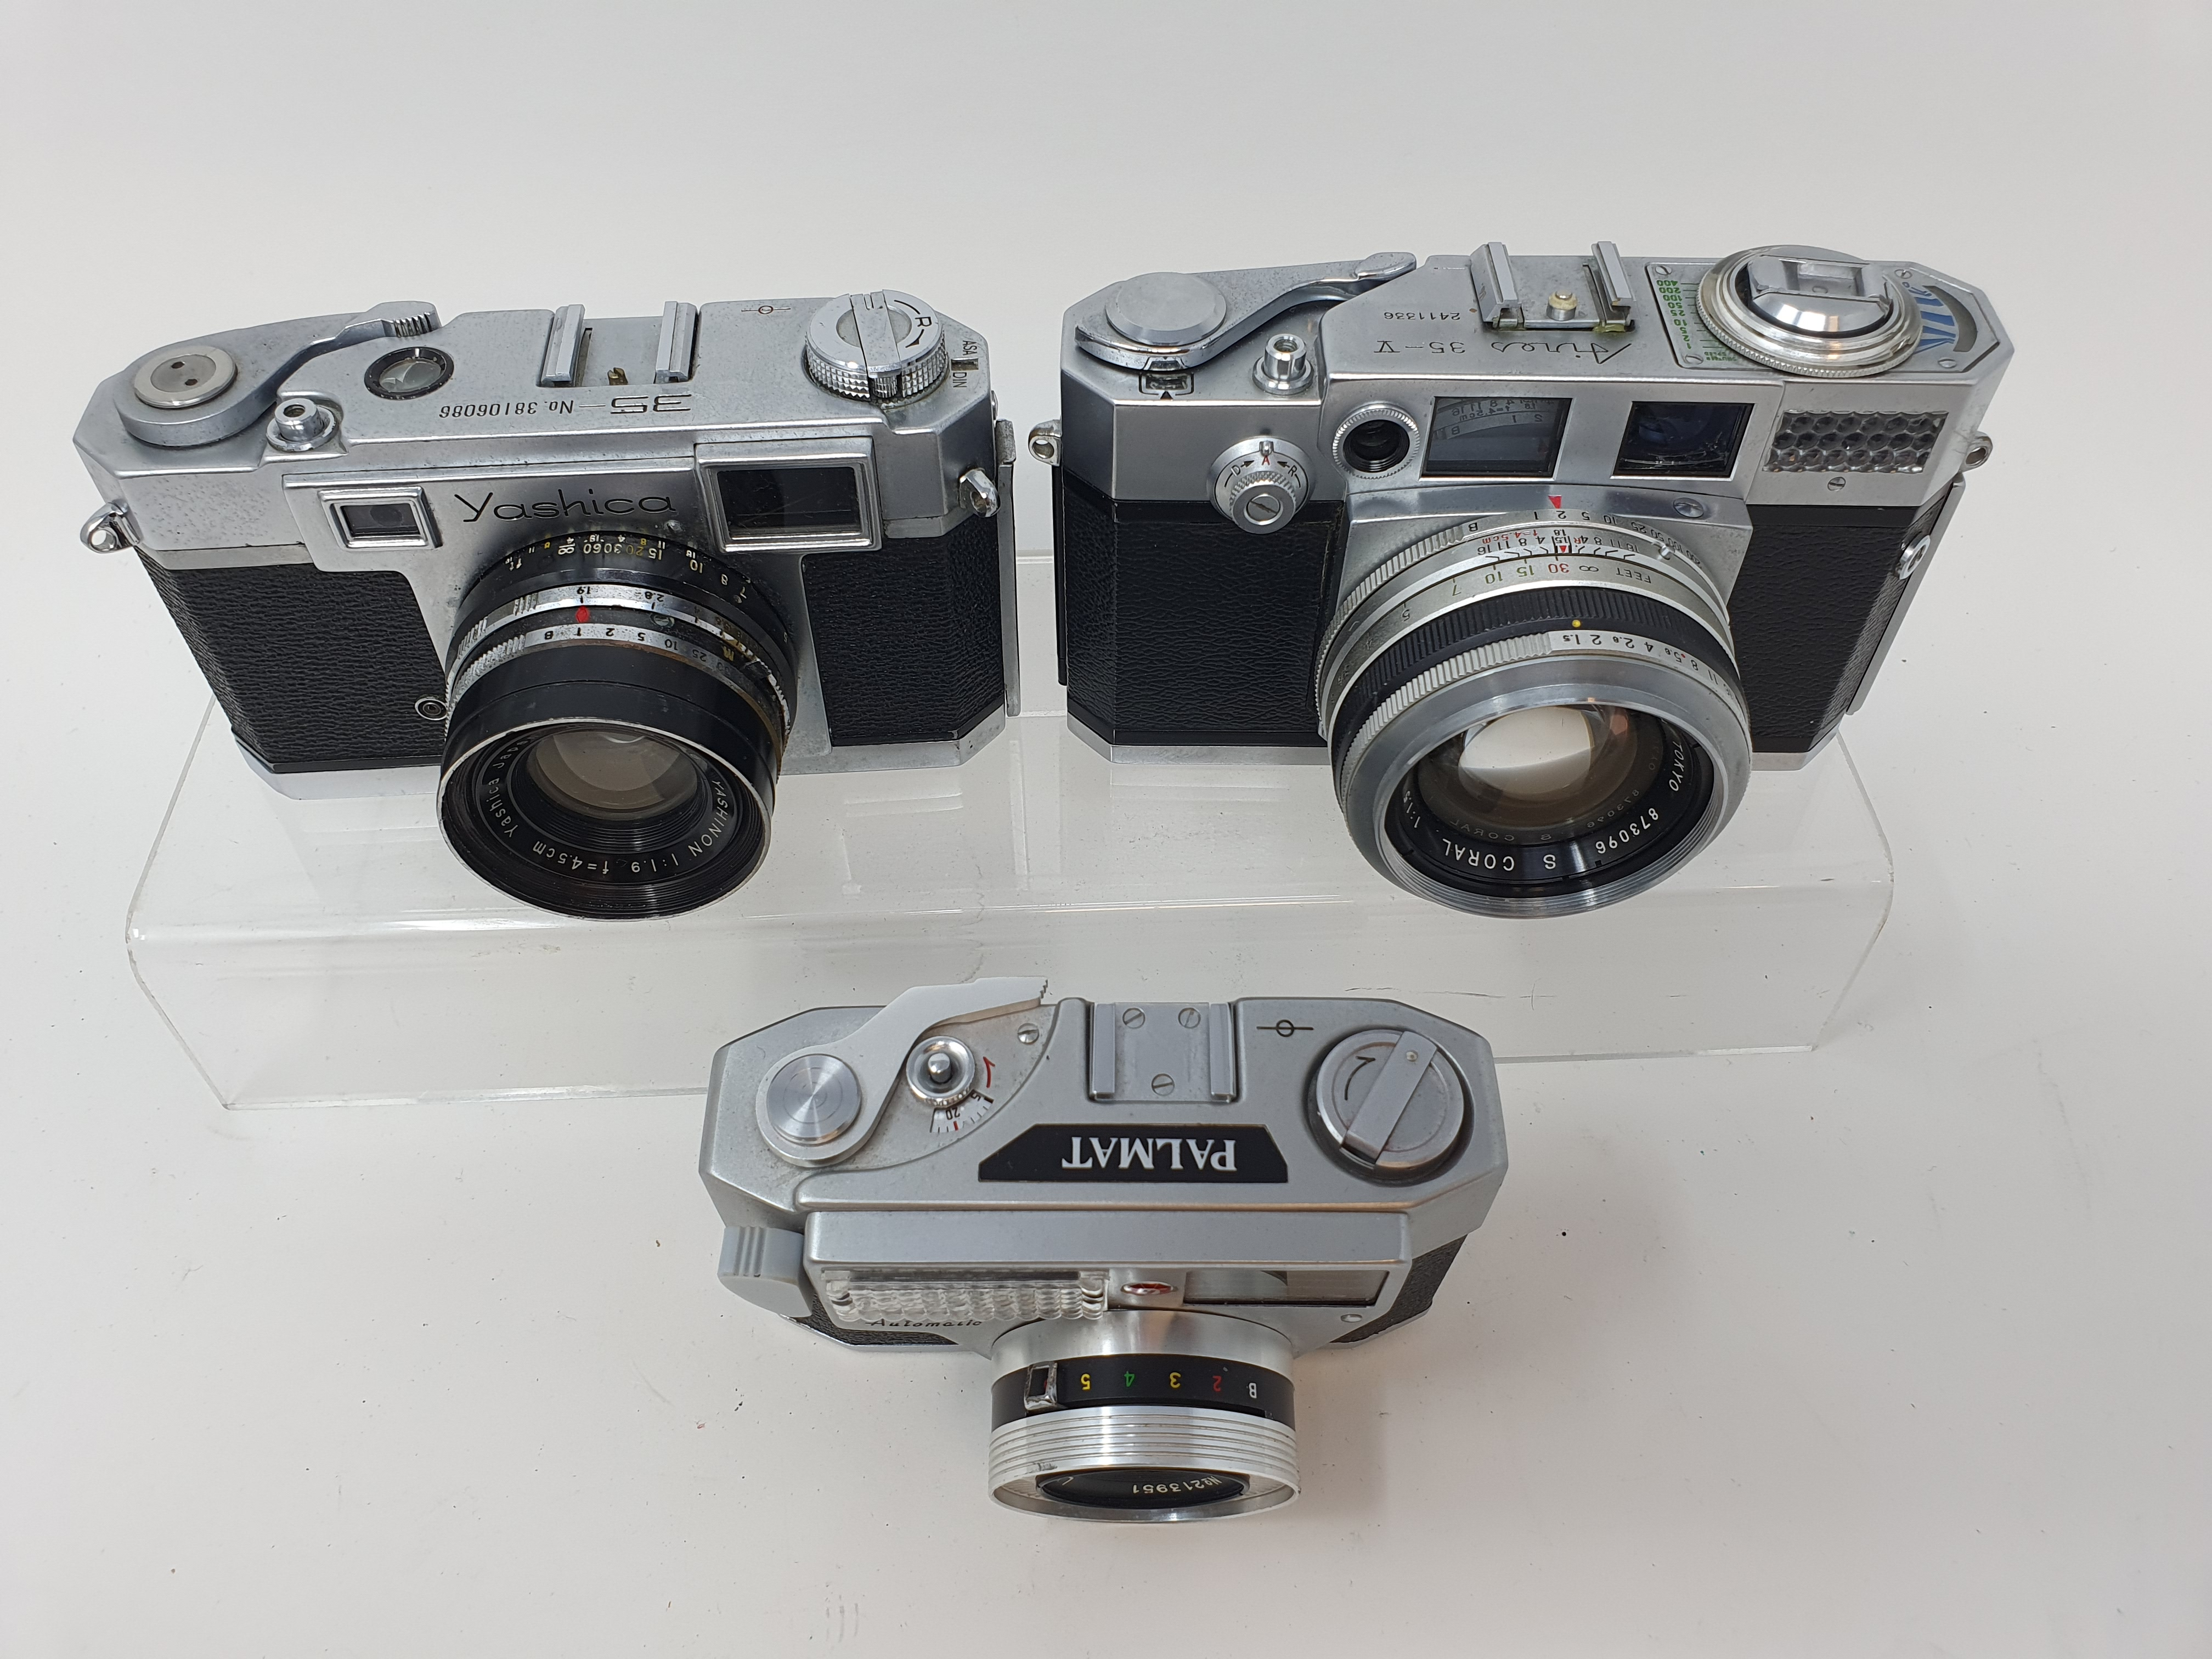 A Yashica 35 camera, serial number 38106086, an Aires 35-V camera, and a Palmat (3) Provenance: Part - Image 2 of 2